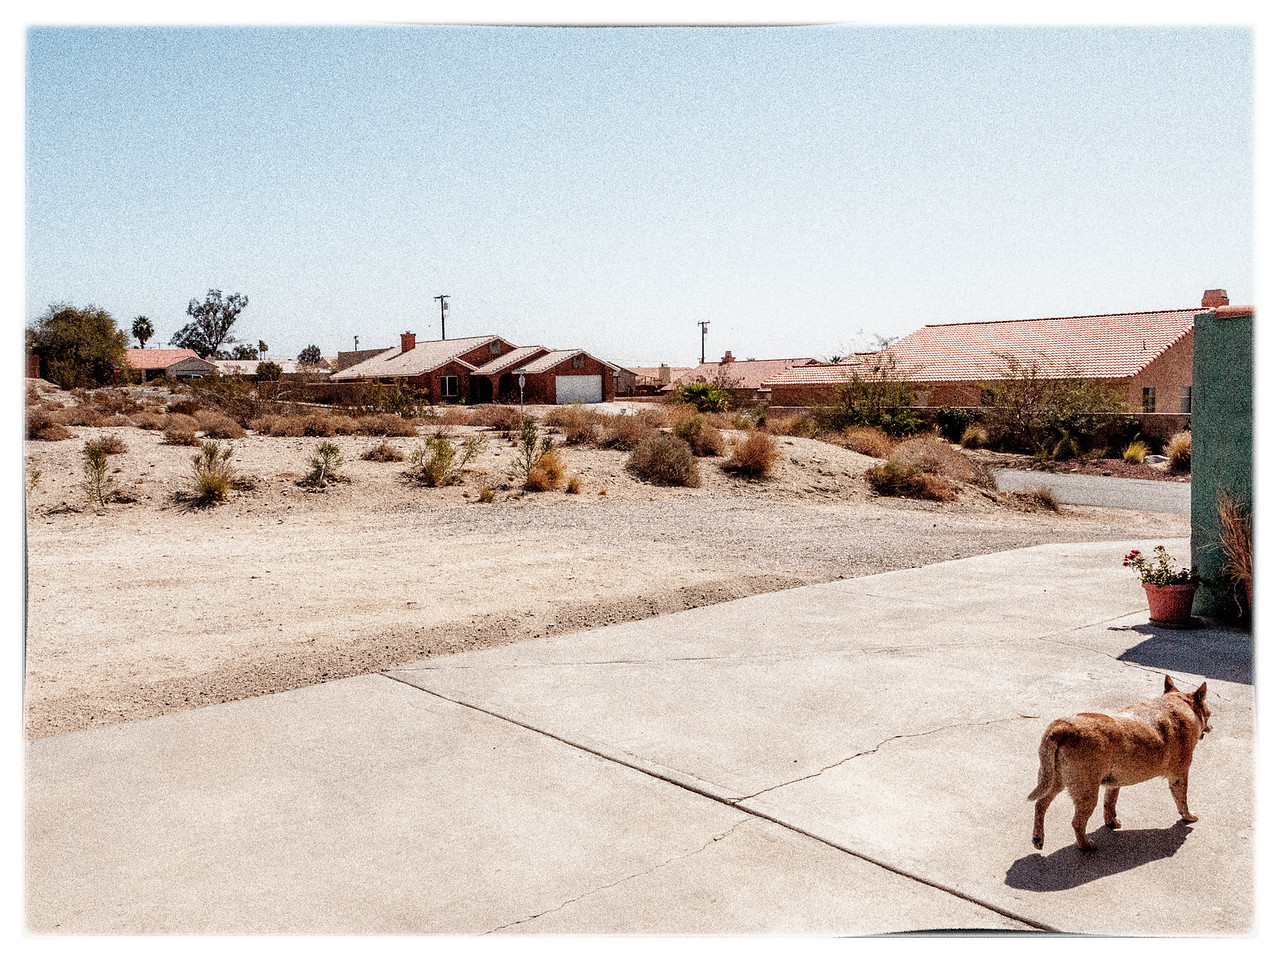 Looking south from the parking area. The dog belongs to Casey. Her name is Scarlett and she is very sweet.